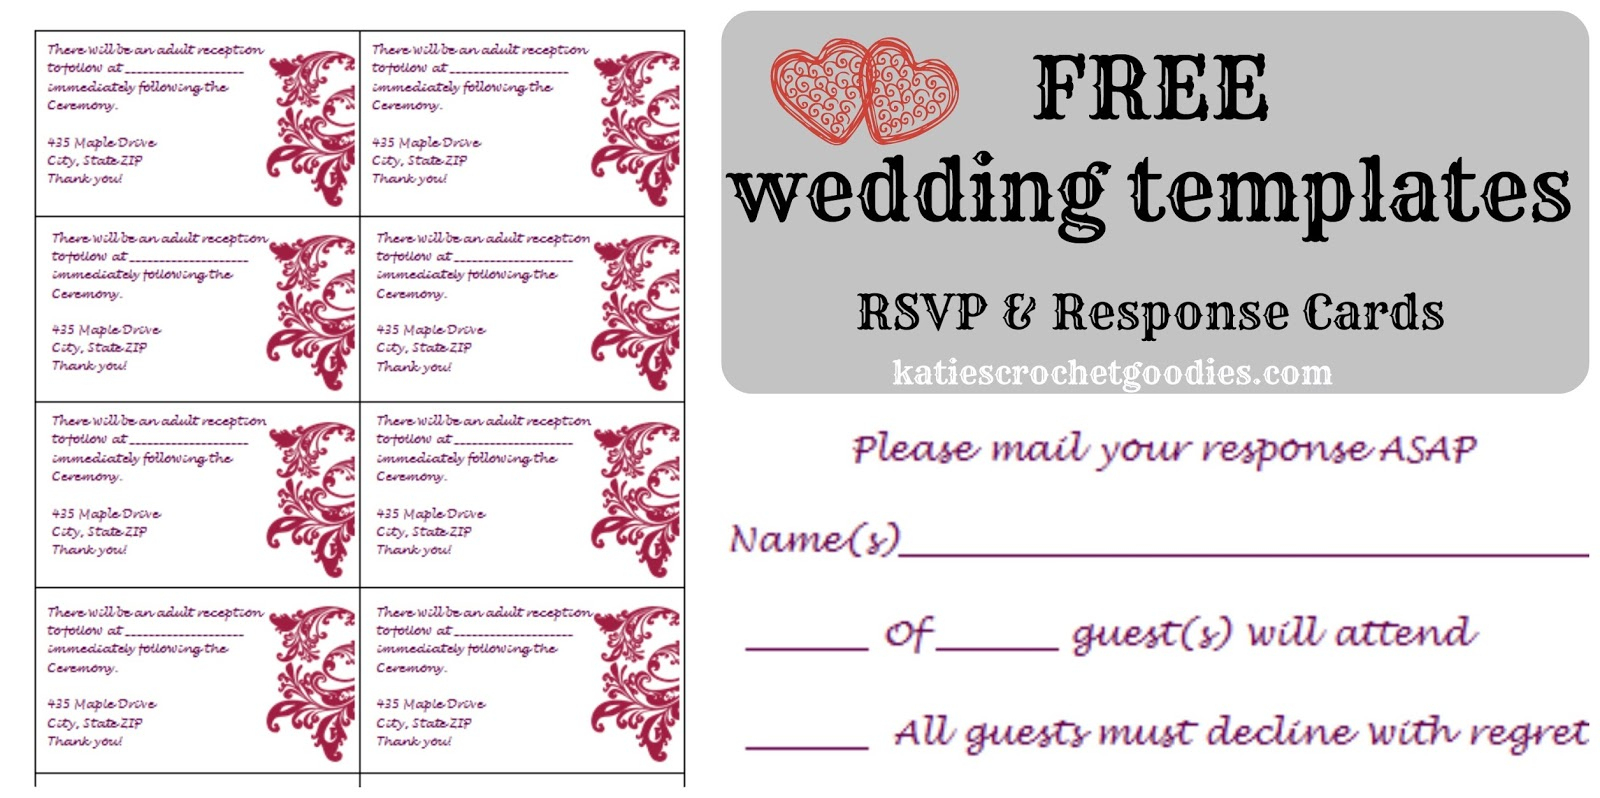 Free Wedding Templates Awesome Free Rsvp Template - Zlatadoor - Free Printable Rsvp Cards